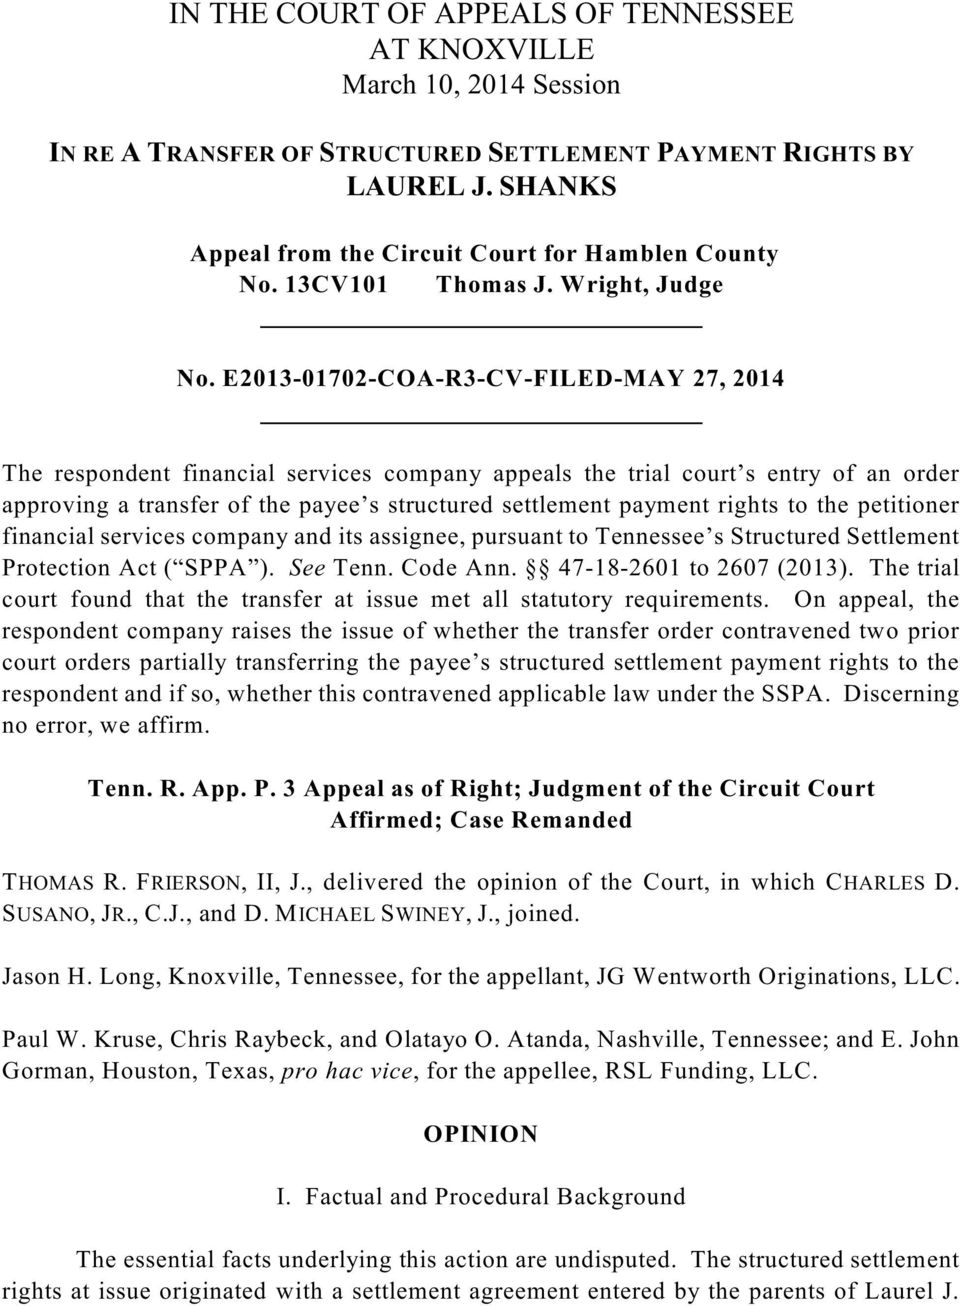 E2013-01702-COA-R3-CV-FILED-MAY 27, 2014 The respondent financial services company appeals the trial court s entry of an order approving a transfer of the payee s structured settlement payment rights